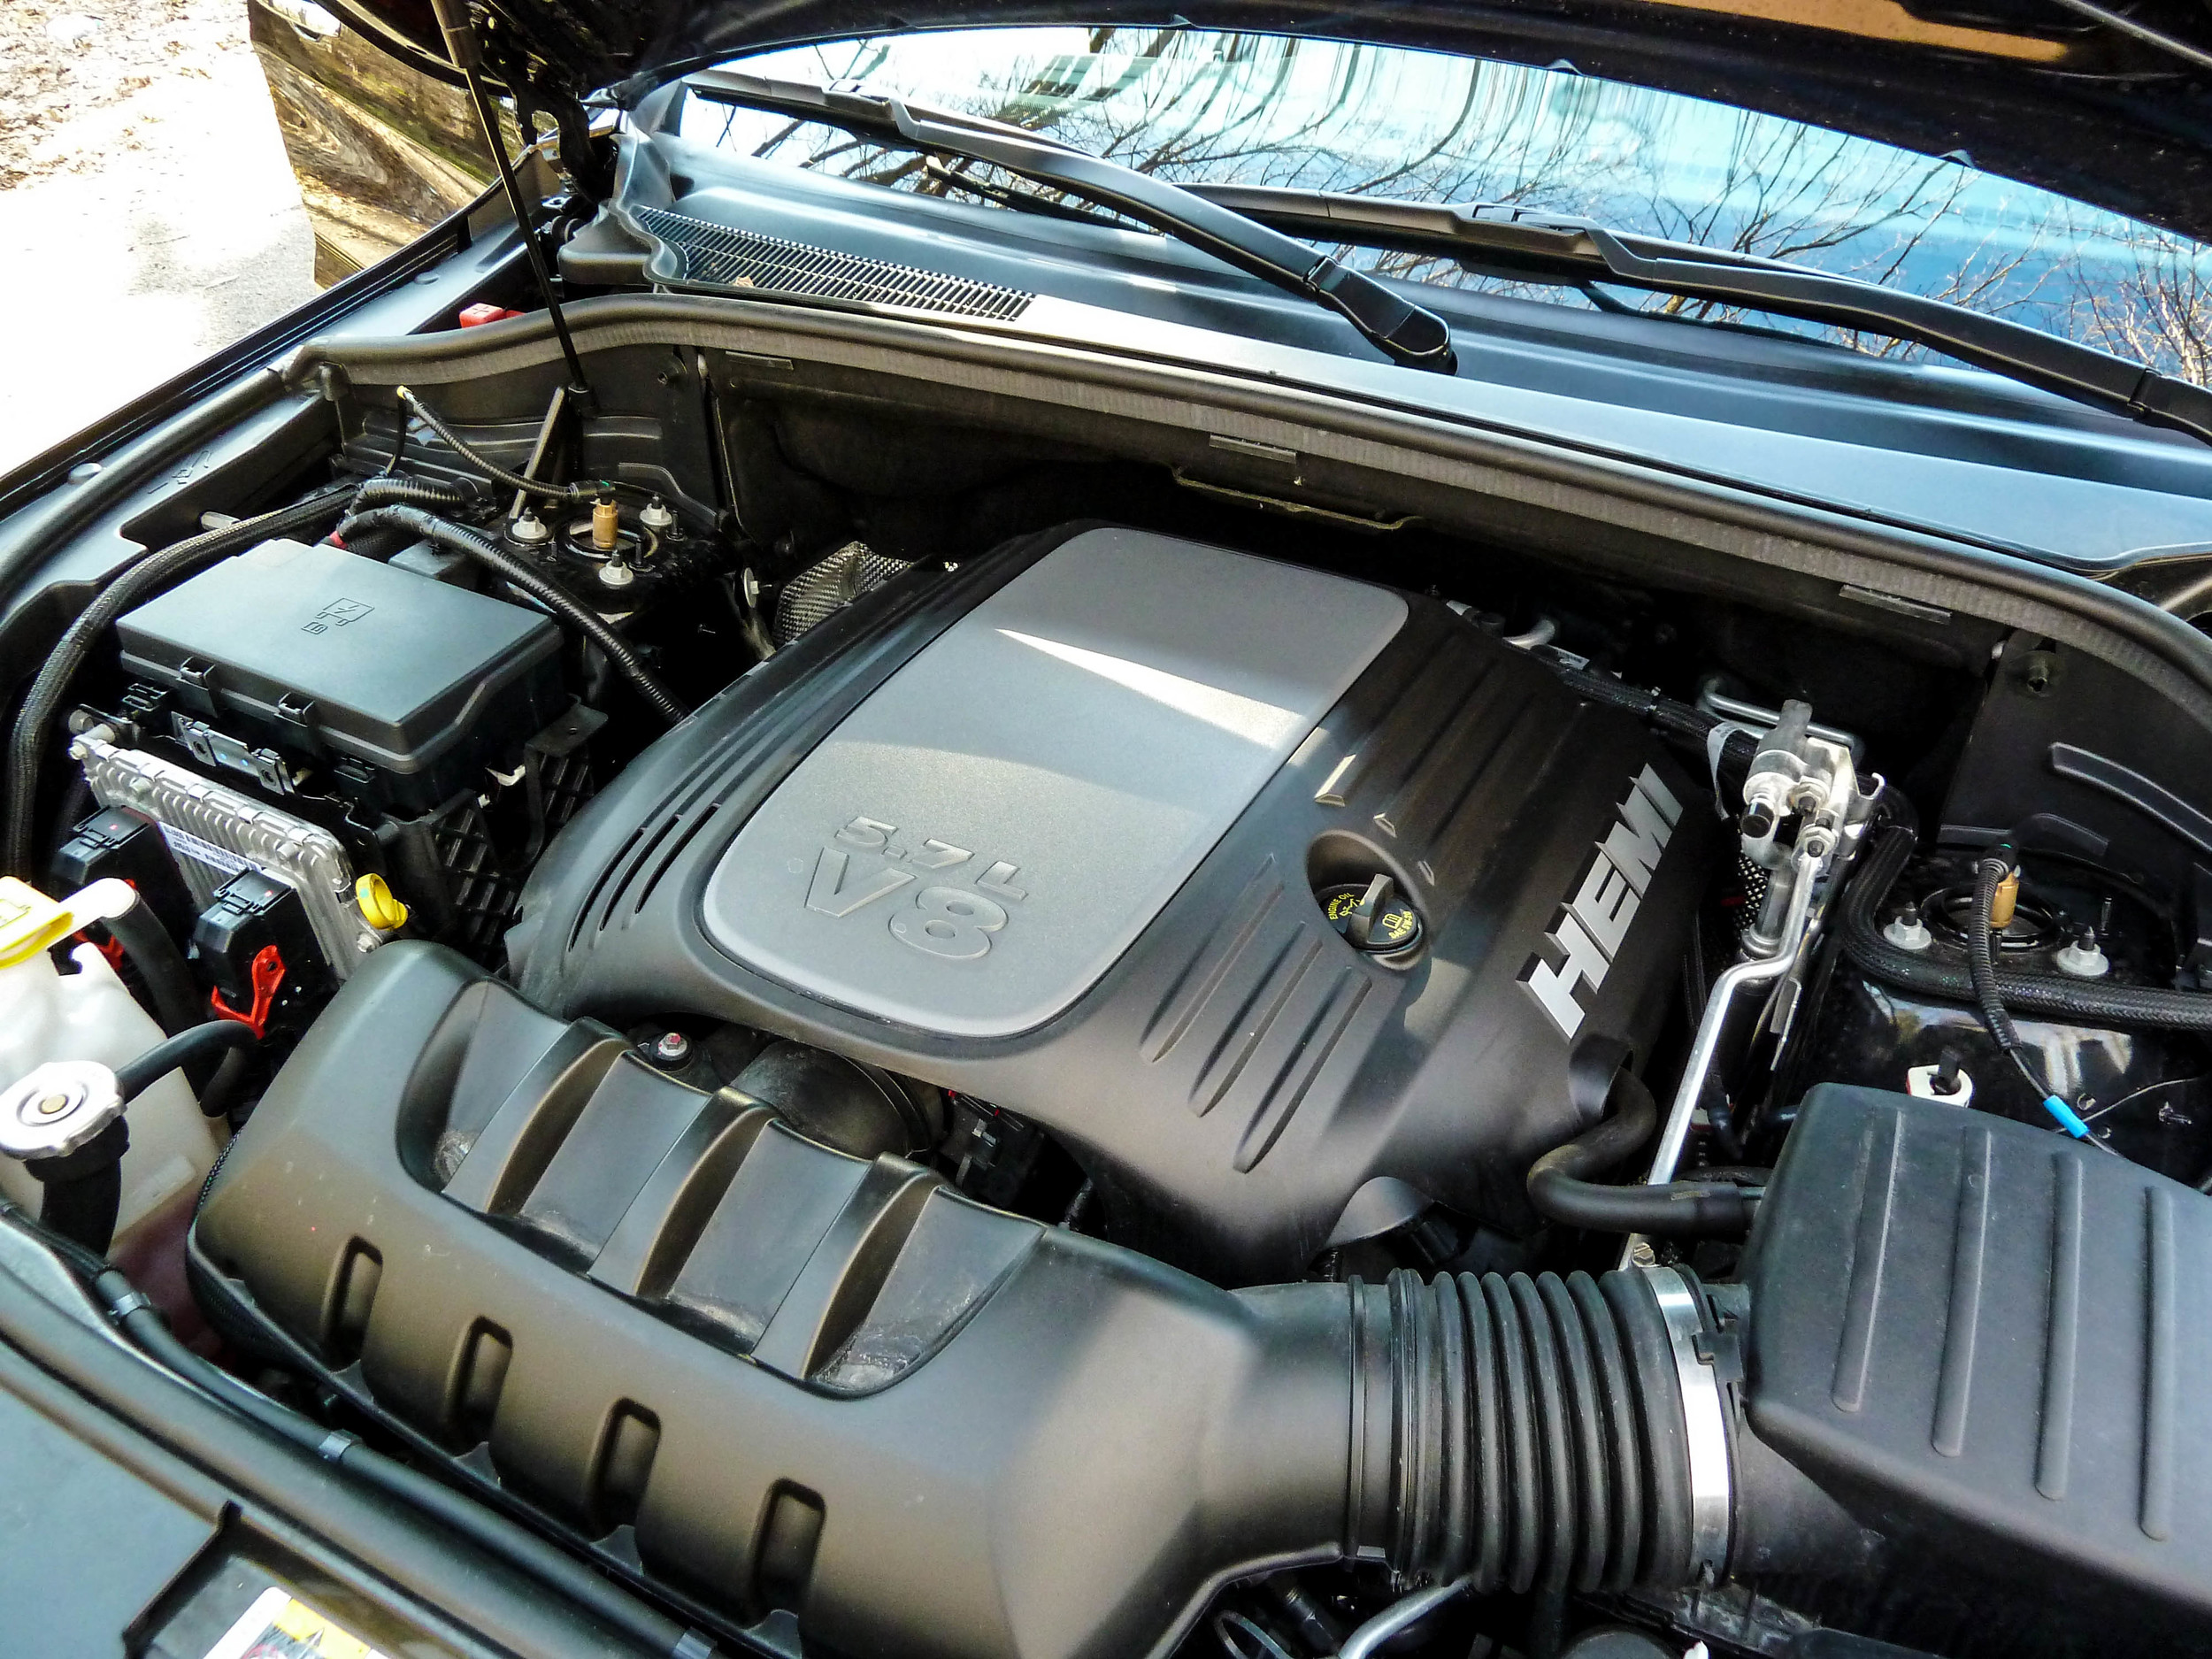 The optional 5.7 Liter Hemi V8 - Equipped with an 8-Speed automatic gearbox